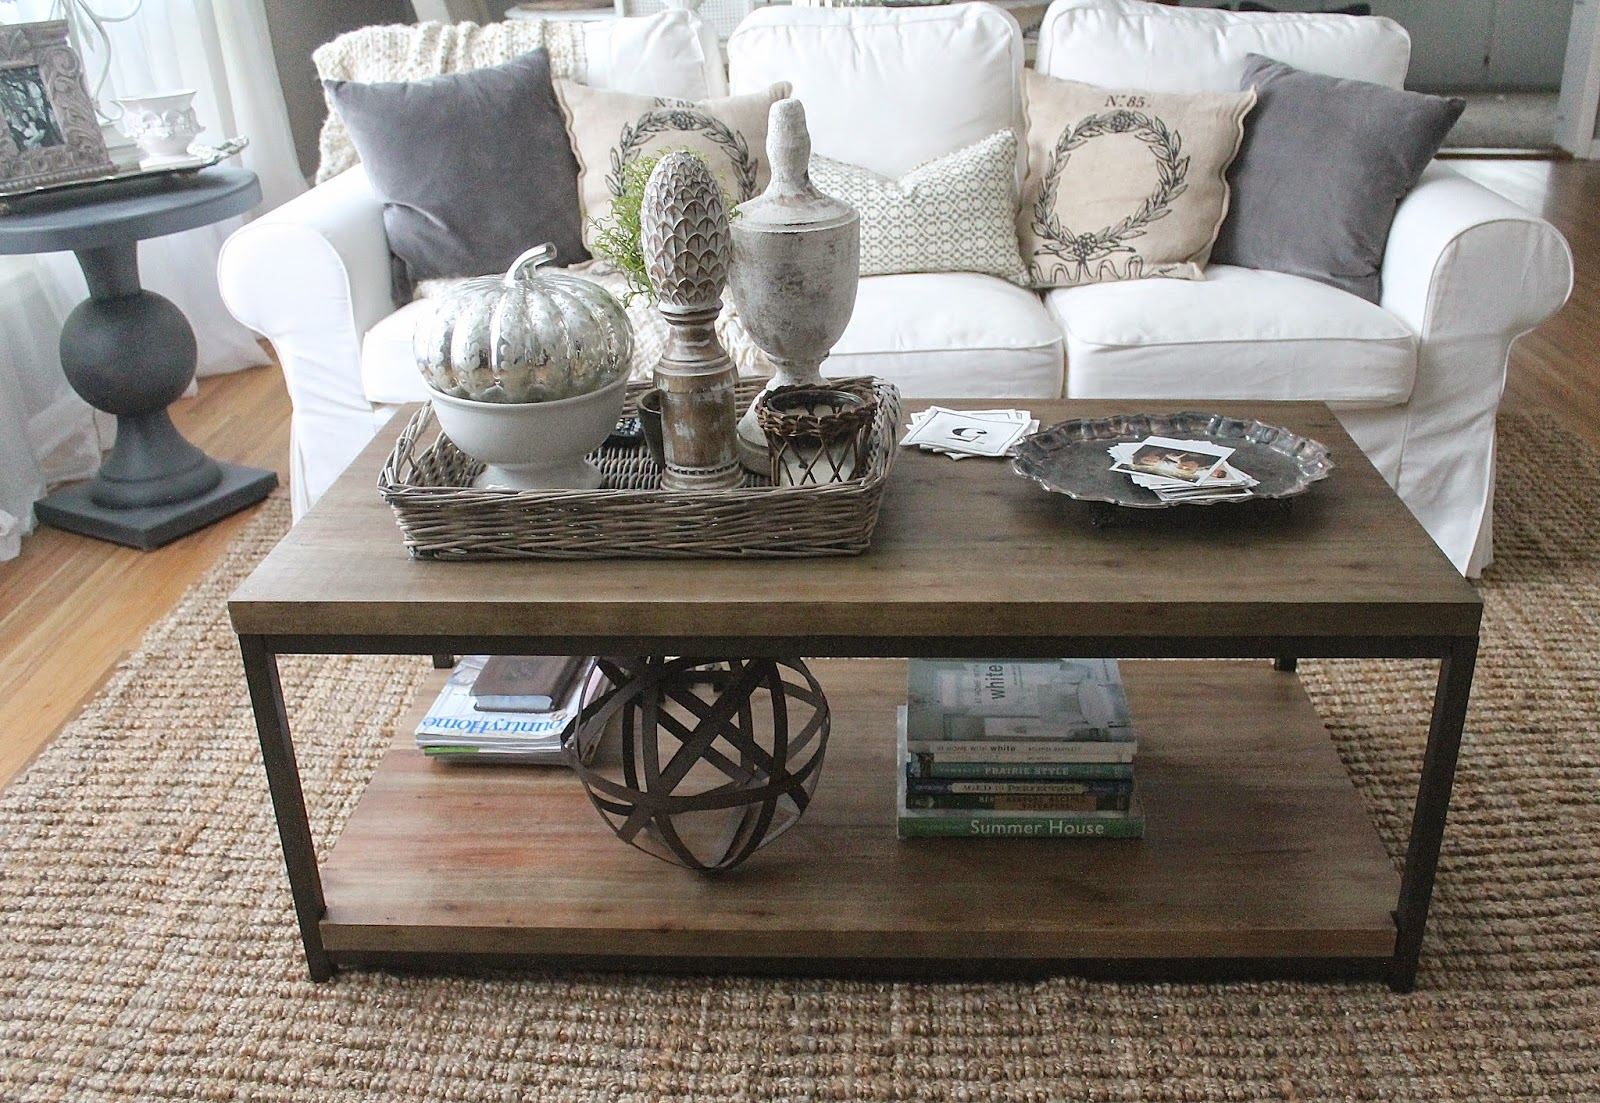 Rustic Coffee Table Decor With An Industrial Touch